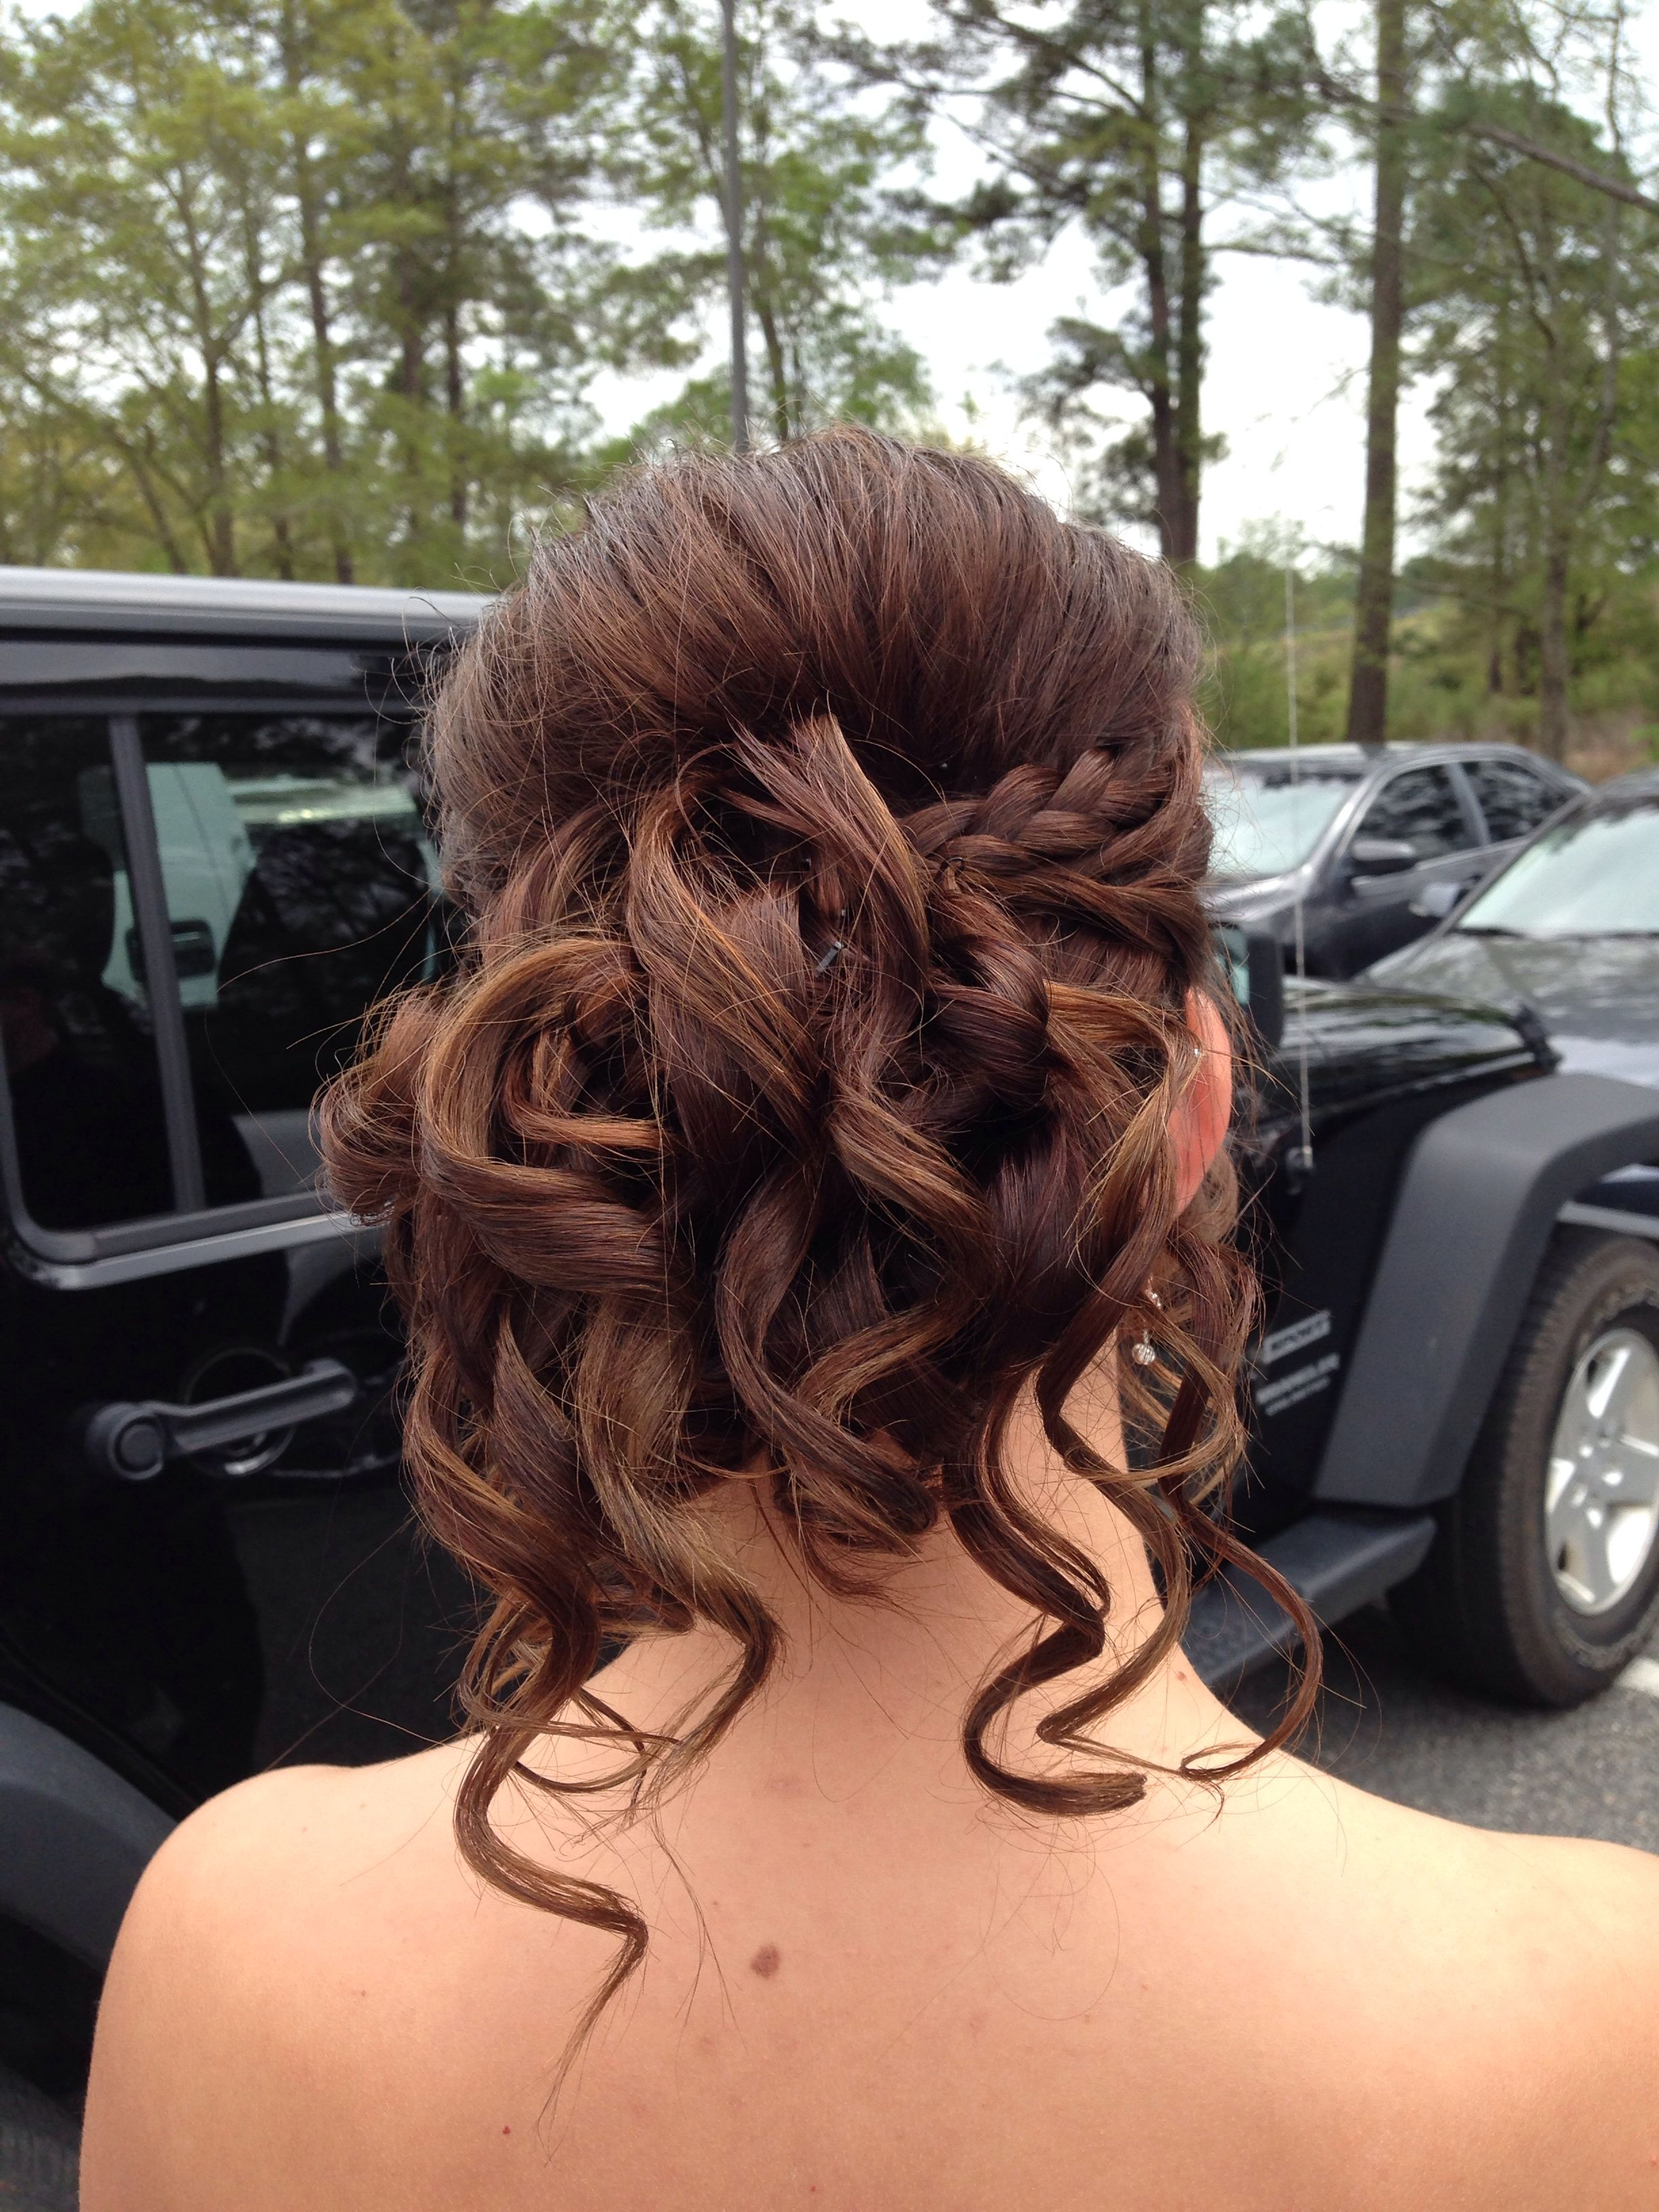 Pin by Jaime Comer on Hair by me | Hair beauty, Hair ...